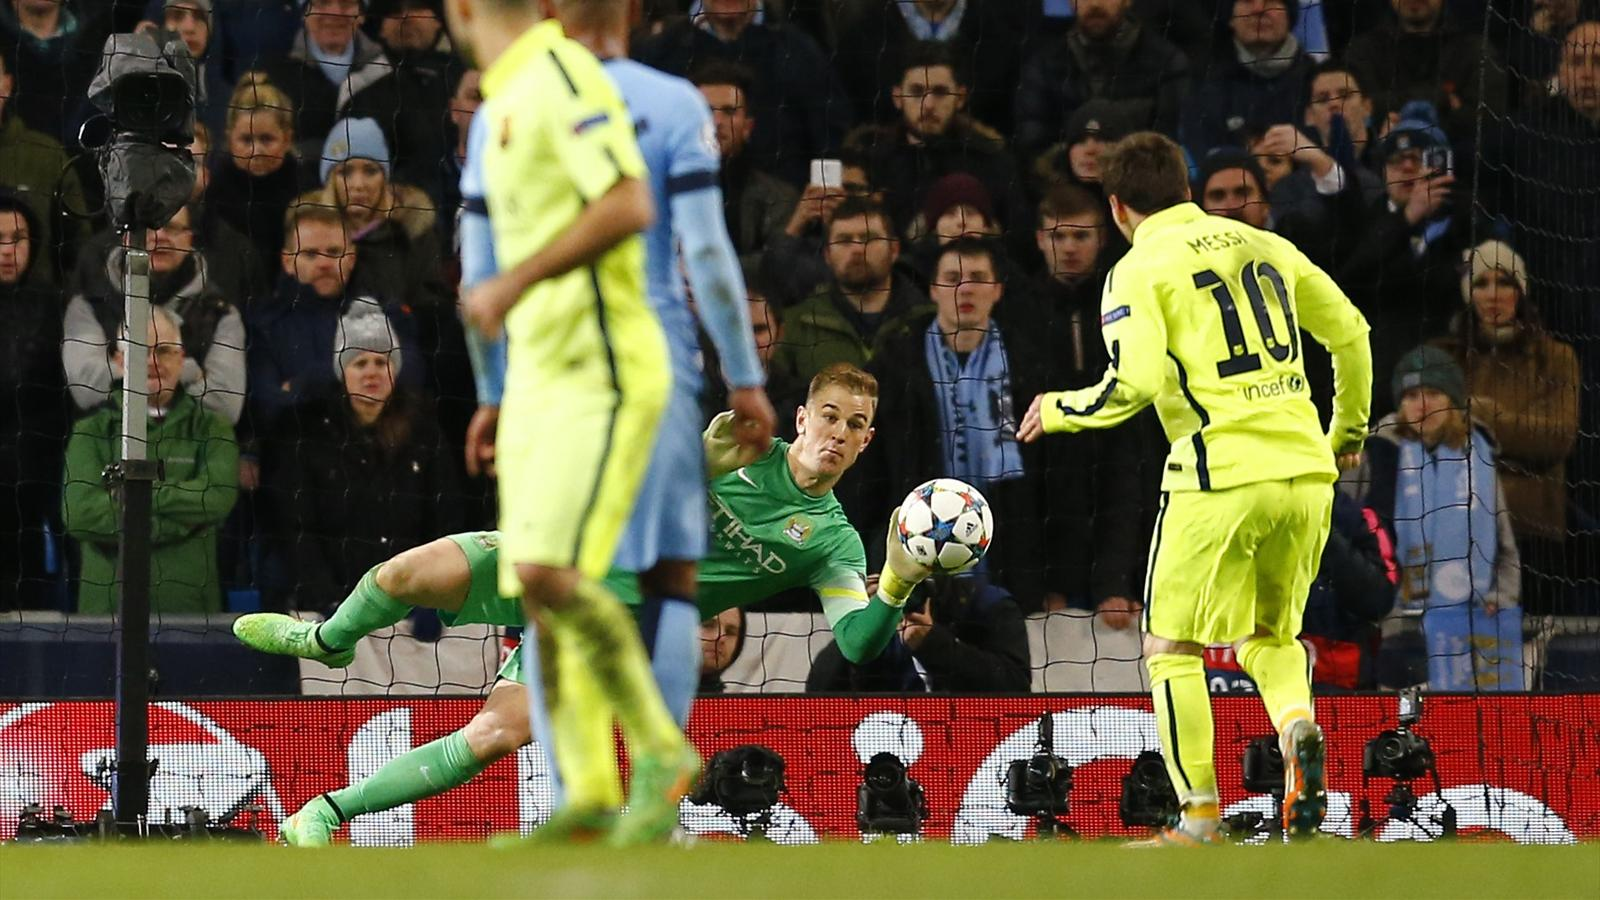 Joe Hart (Manchester City) repousse le penalty de Lionel Messi (Barça)